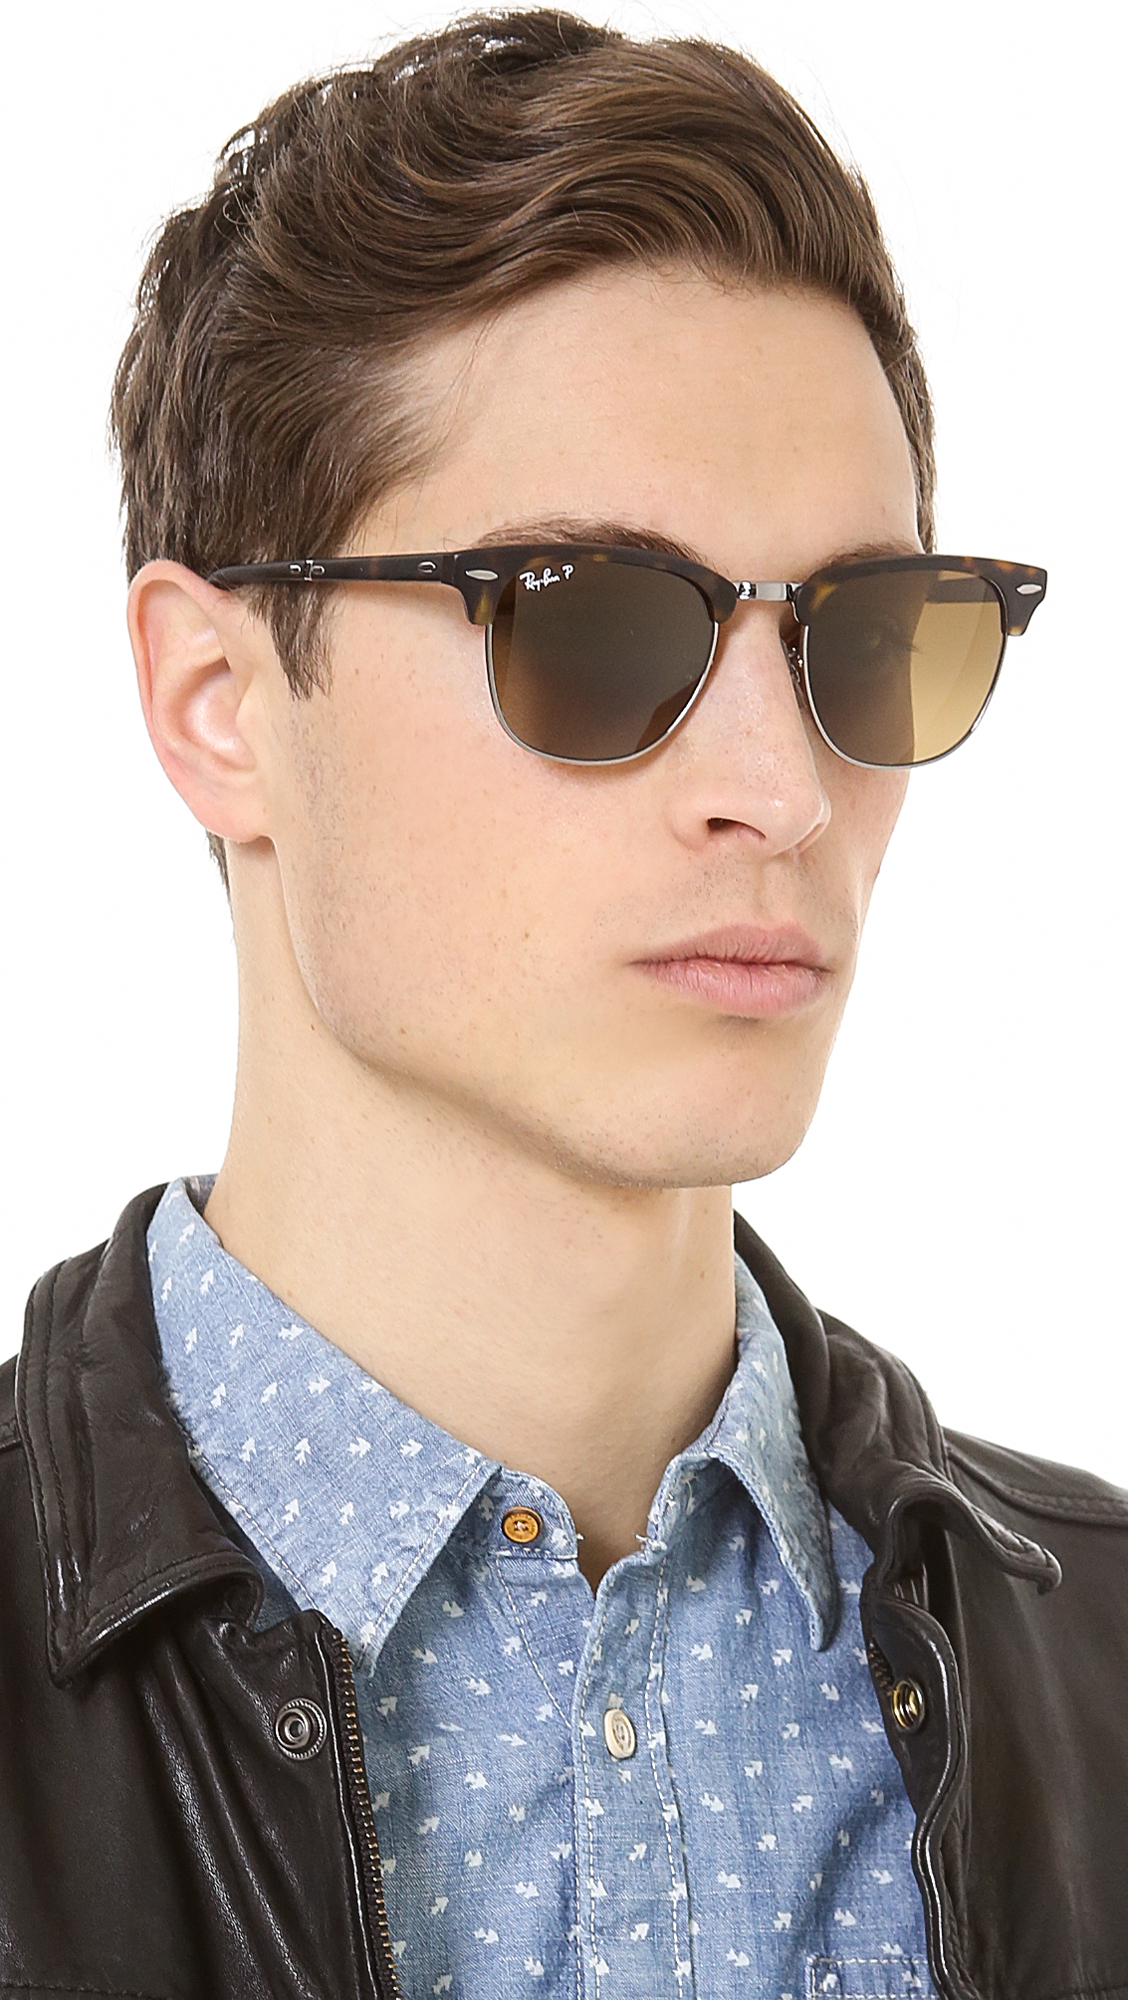 f0e2a9b356 ... coupon code for gallery. previously sold at east dane mens ray ban  clubmaster 0bf08 24234